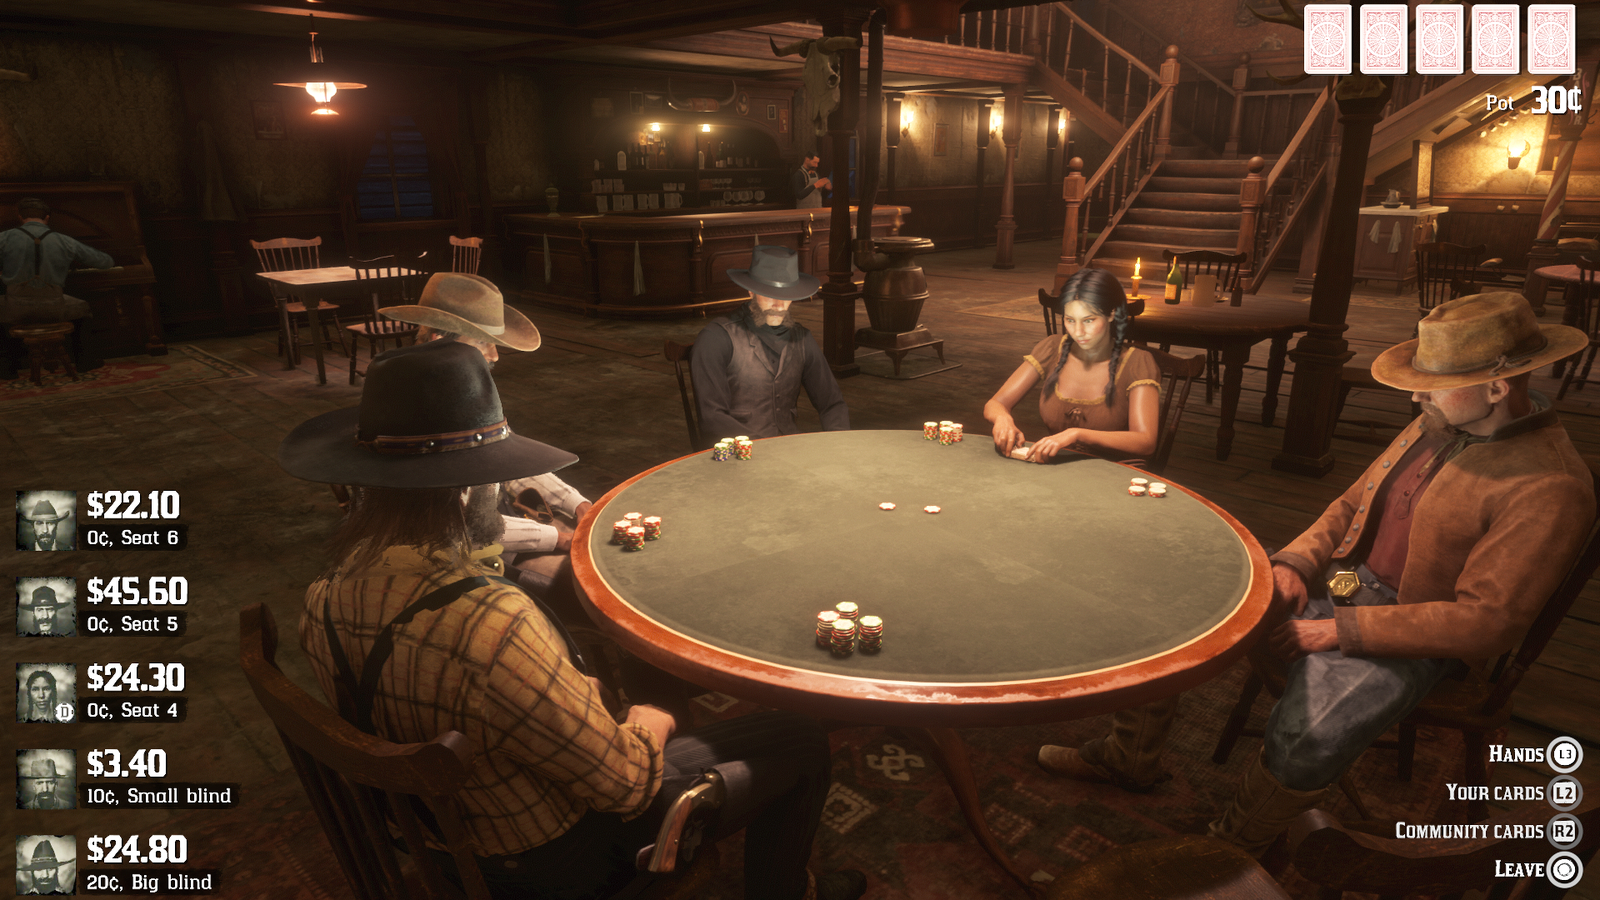 Latest Red Dead Online Update Adds Poker, Ponchos And More – Kotaku